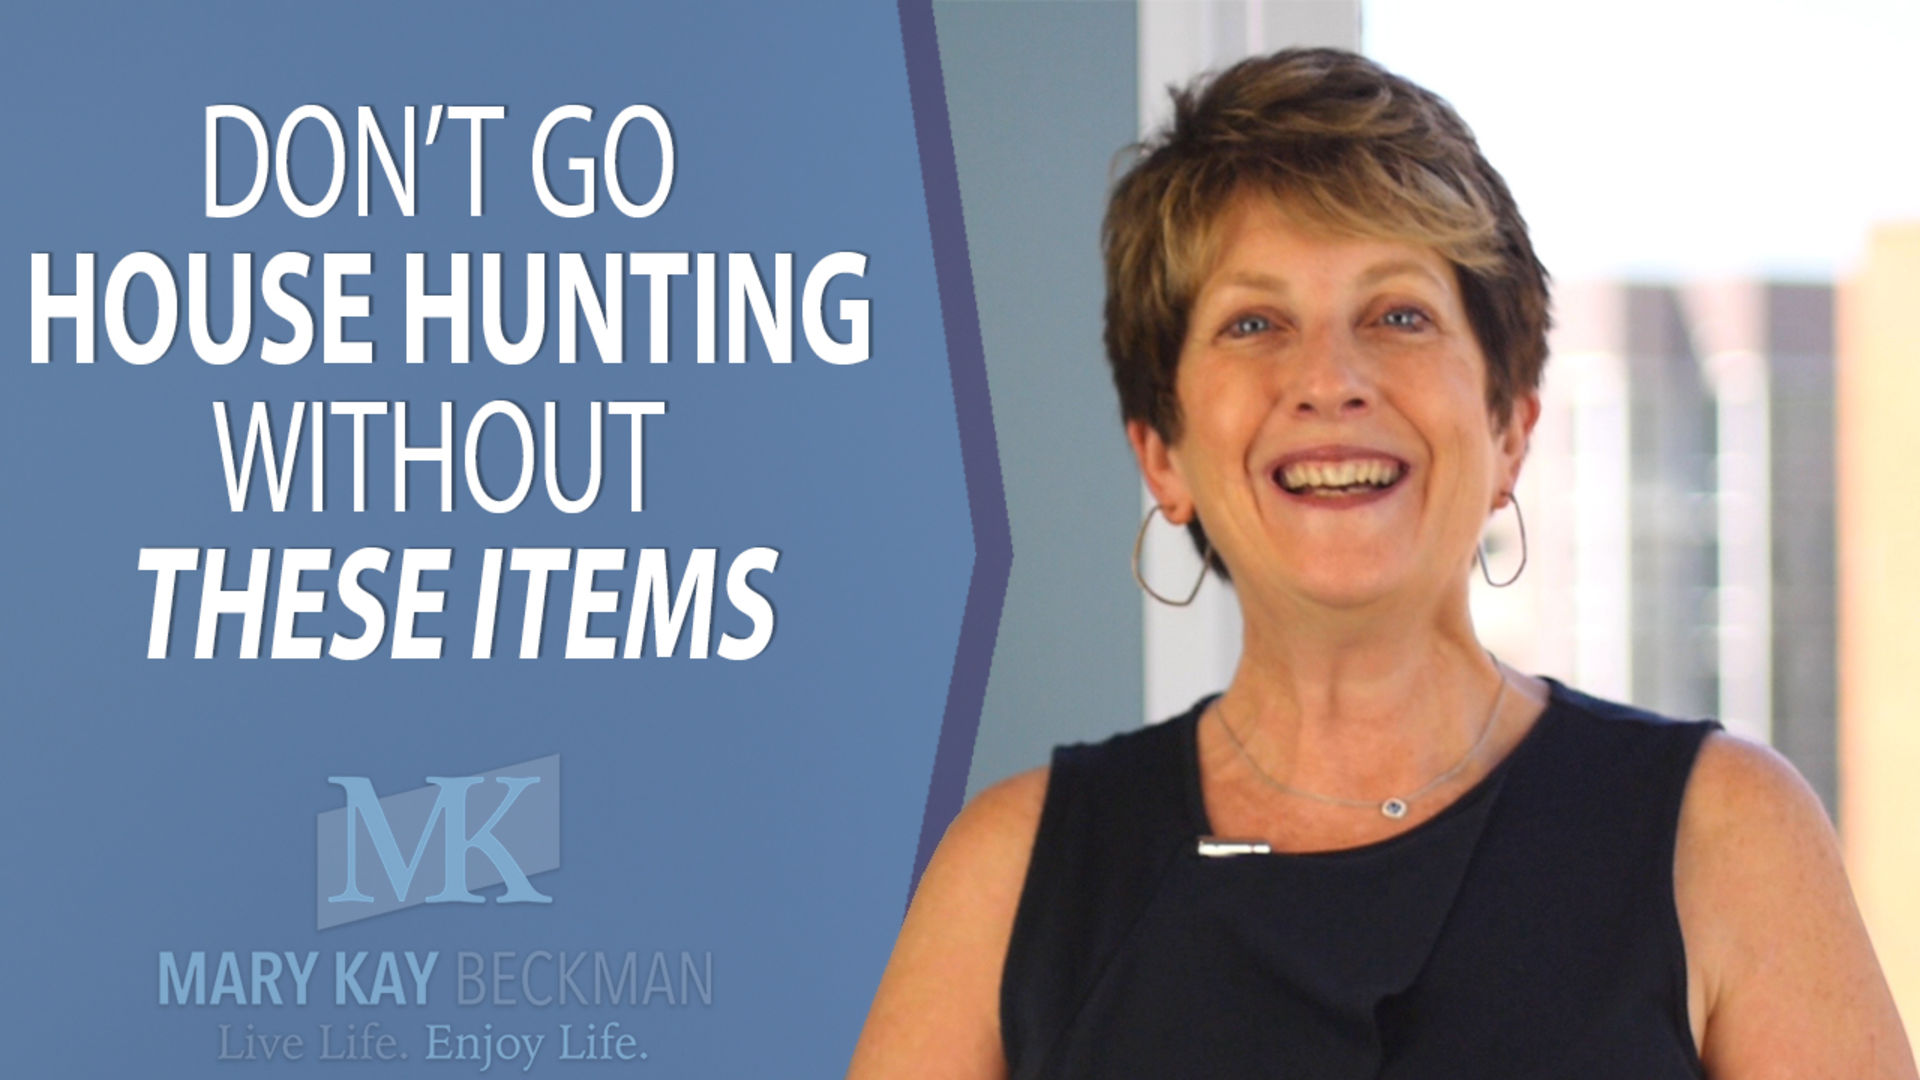 What Do You Need to Bring When You Go House Hunting?